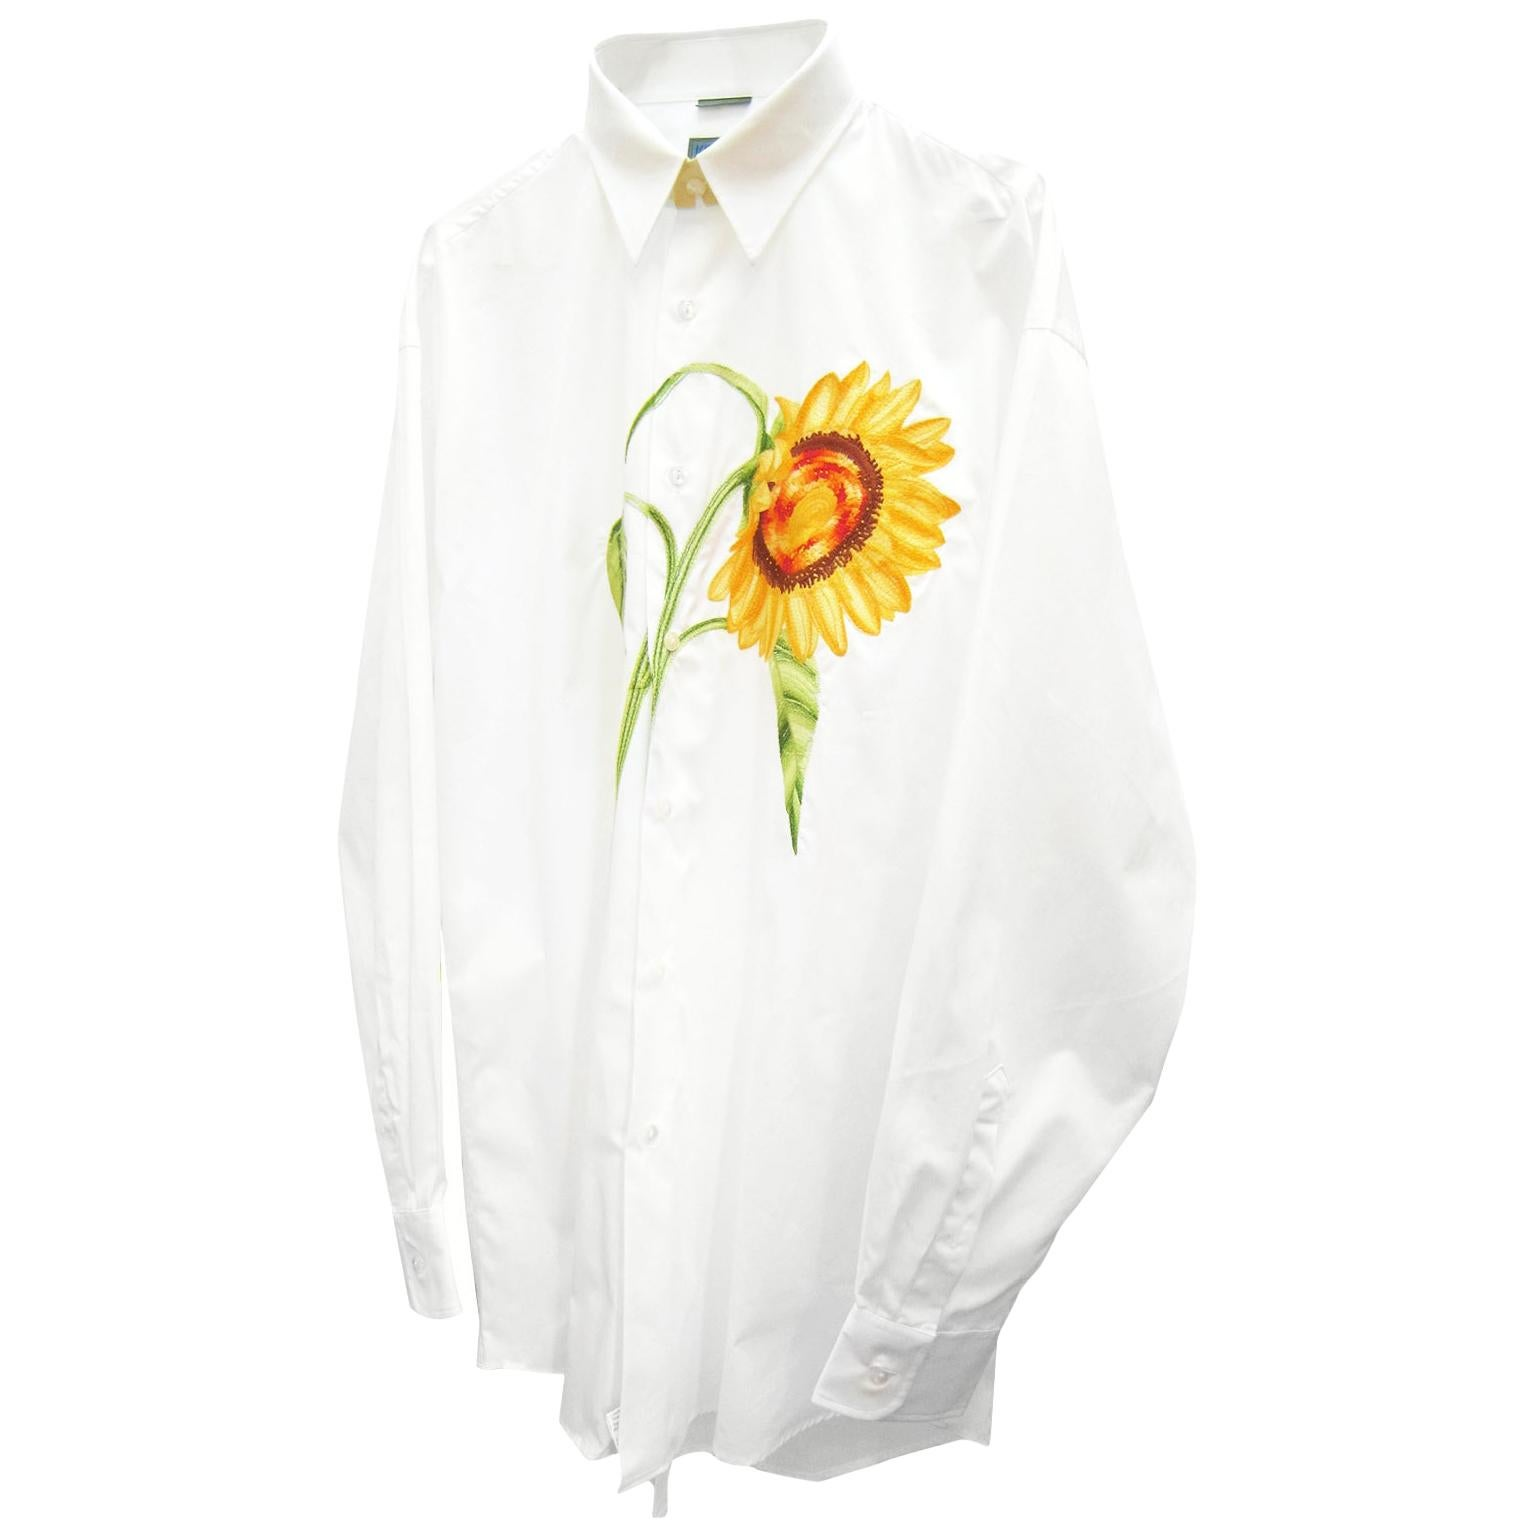 Kenzo Sunflower Large Embroidery Mens White Shirt NWT 1980s